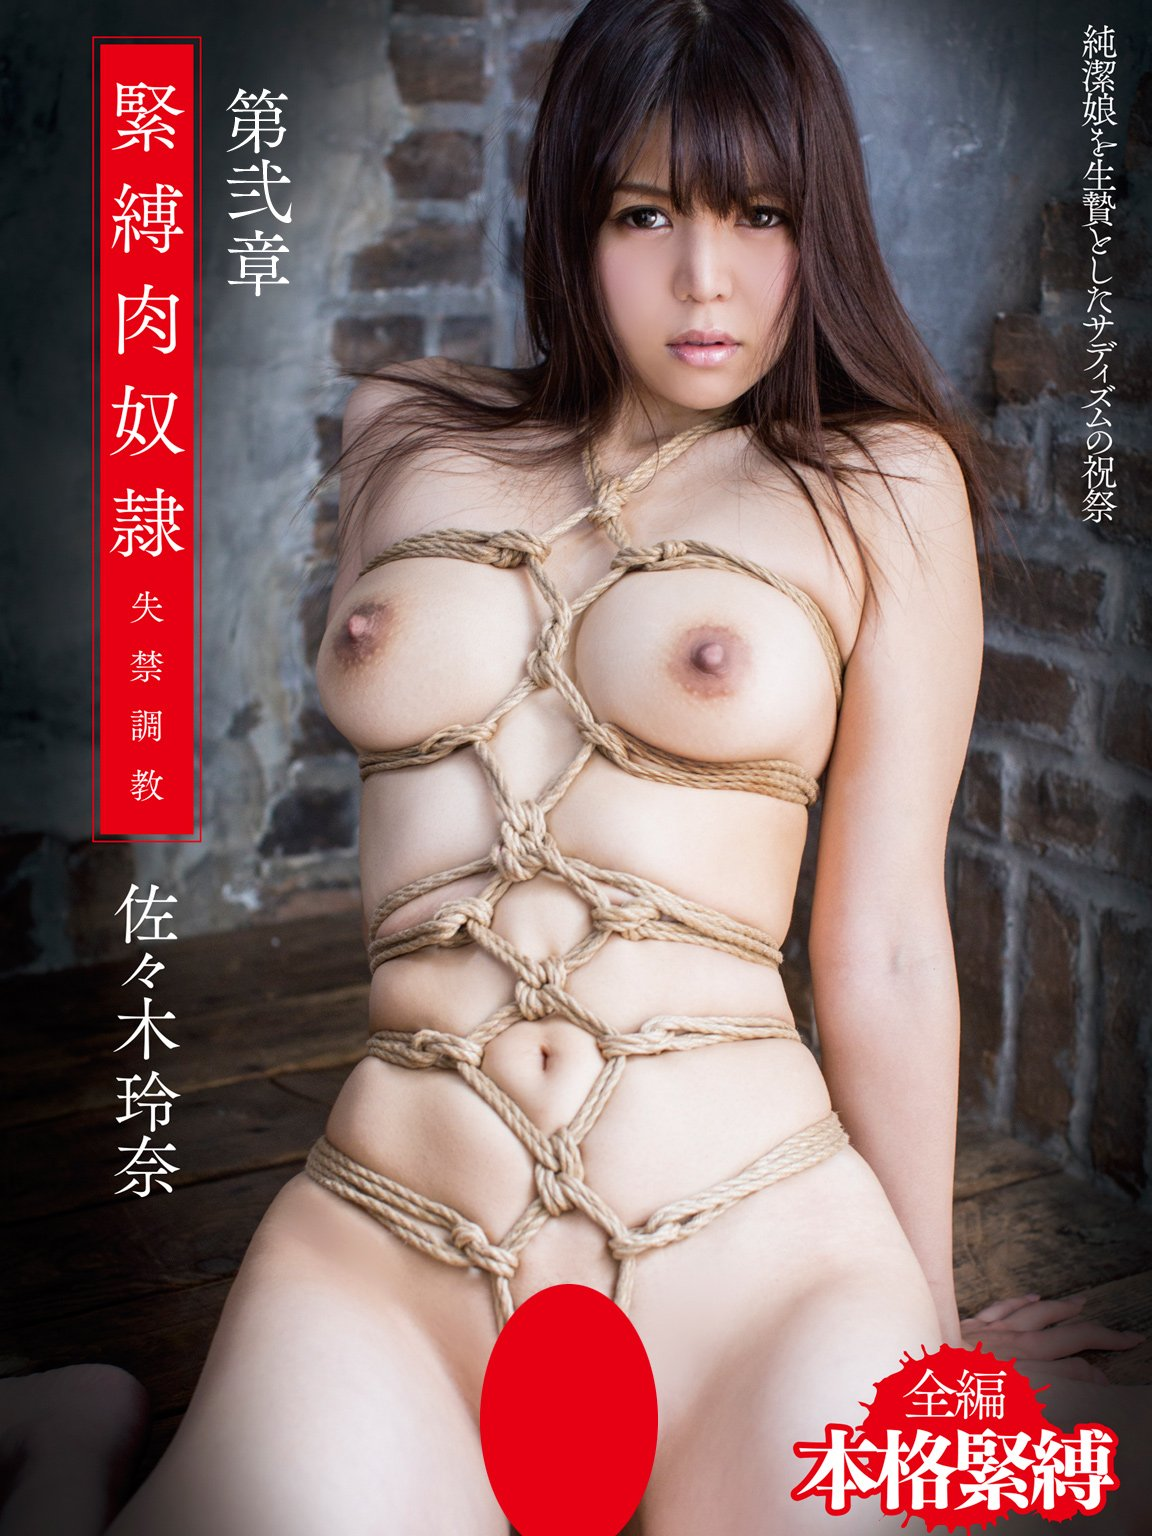 Bondage slave Sasaki Rena Chapter 2 amazon Limited Edition MAXING Japanese Cute Girl Picture Book